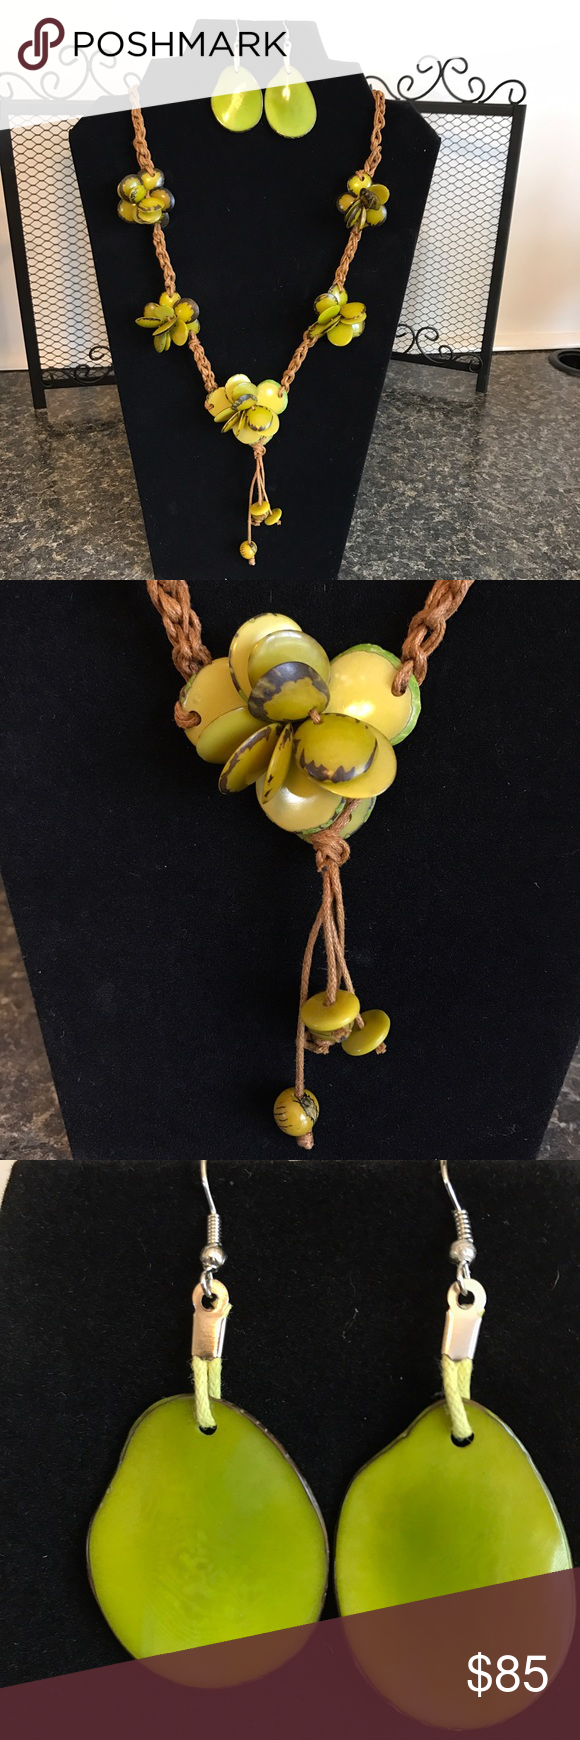 Intricately designed and made Tagua necklace set This avocado Green necklace is made from Organic Tagua, which is the seed of the palm tree fruit, otherwise known as Vegan Ivory. It is hand picked, carved, colored, designed and placed together to make delicate yet natural design placed on a tan hemp knotted durable string.The color is waterproof and will not fade. Tagua being a natural material has blemishes which gives it an elegant yet a more natural look. Jewelry